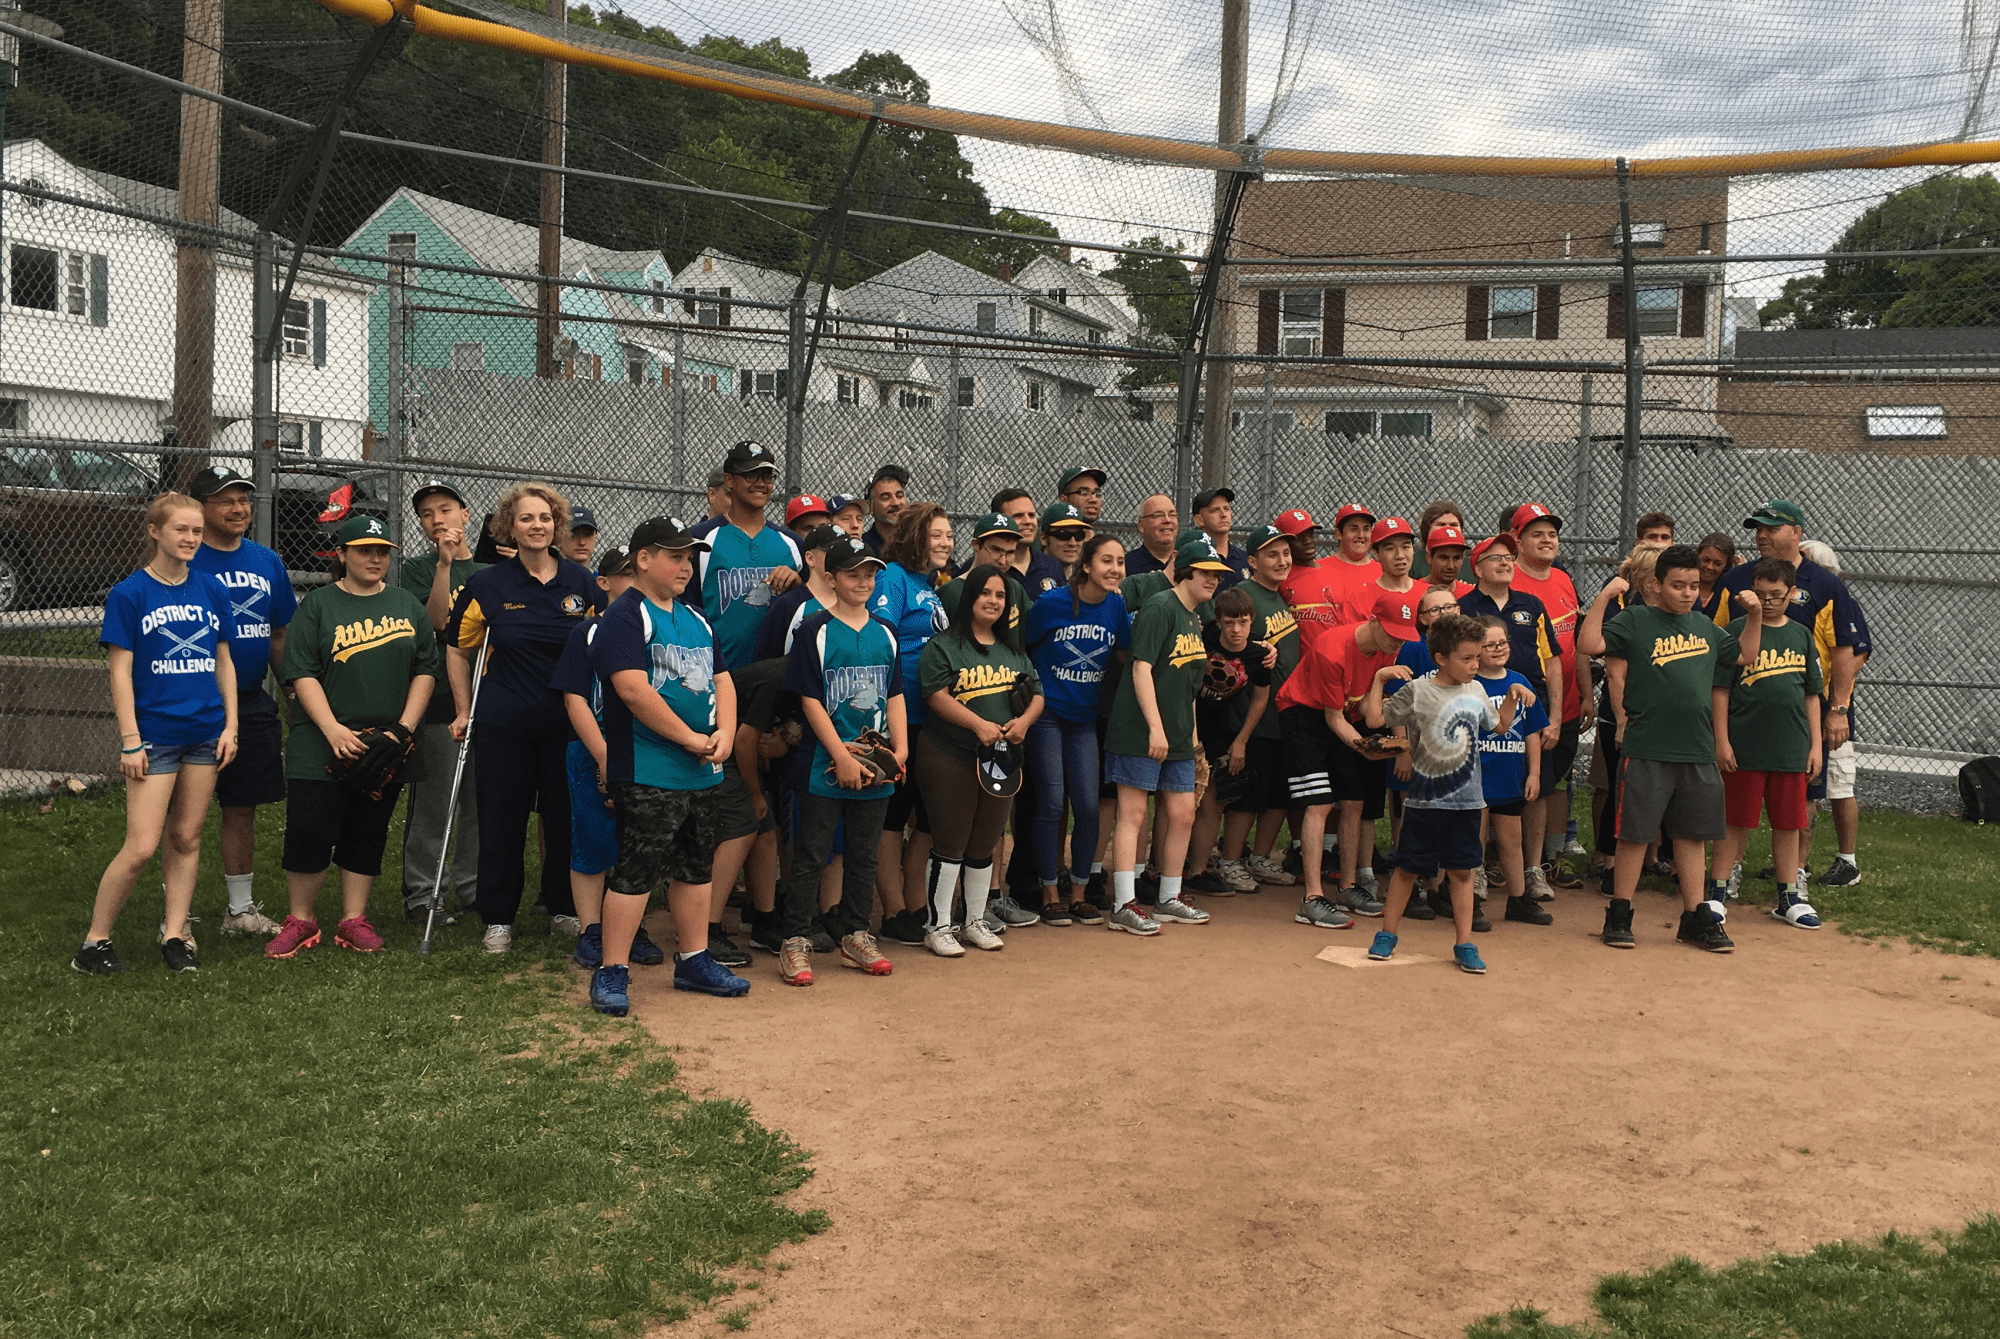 Mass. D12 Challenger League team photo